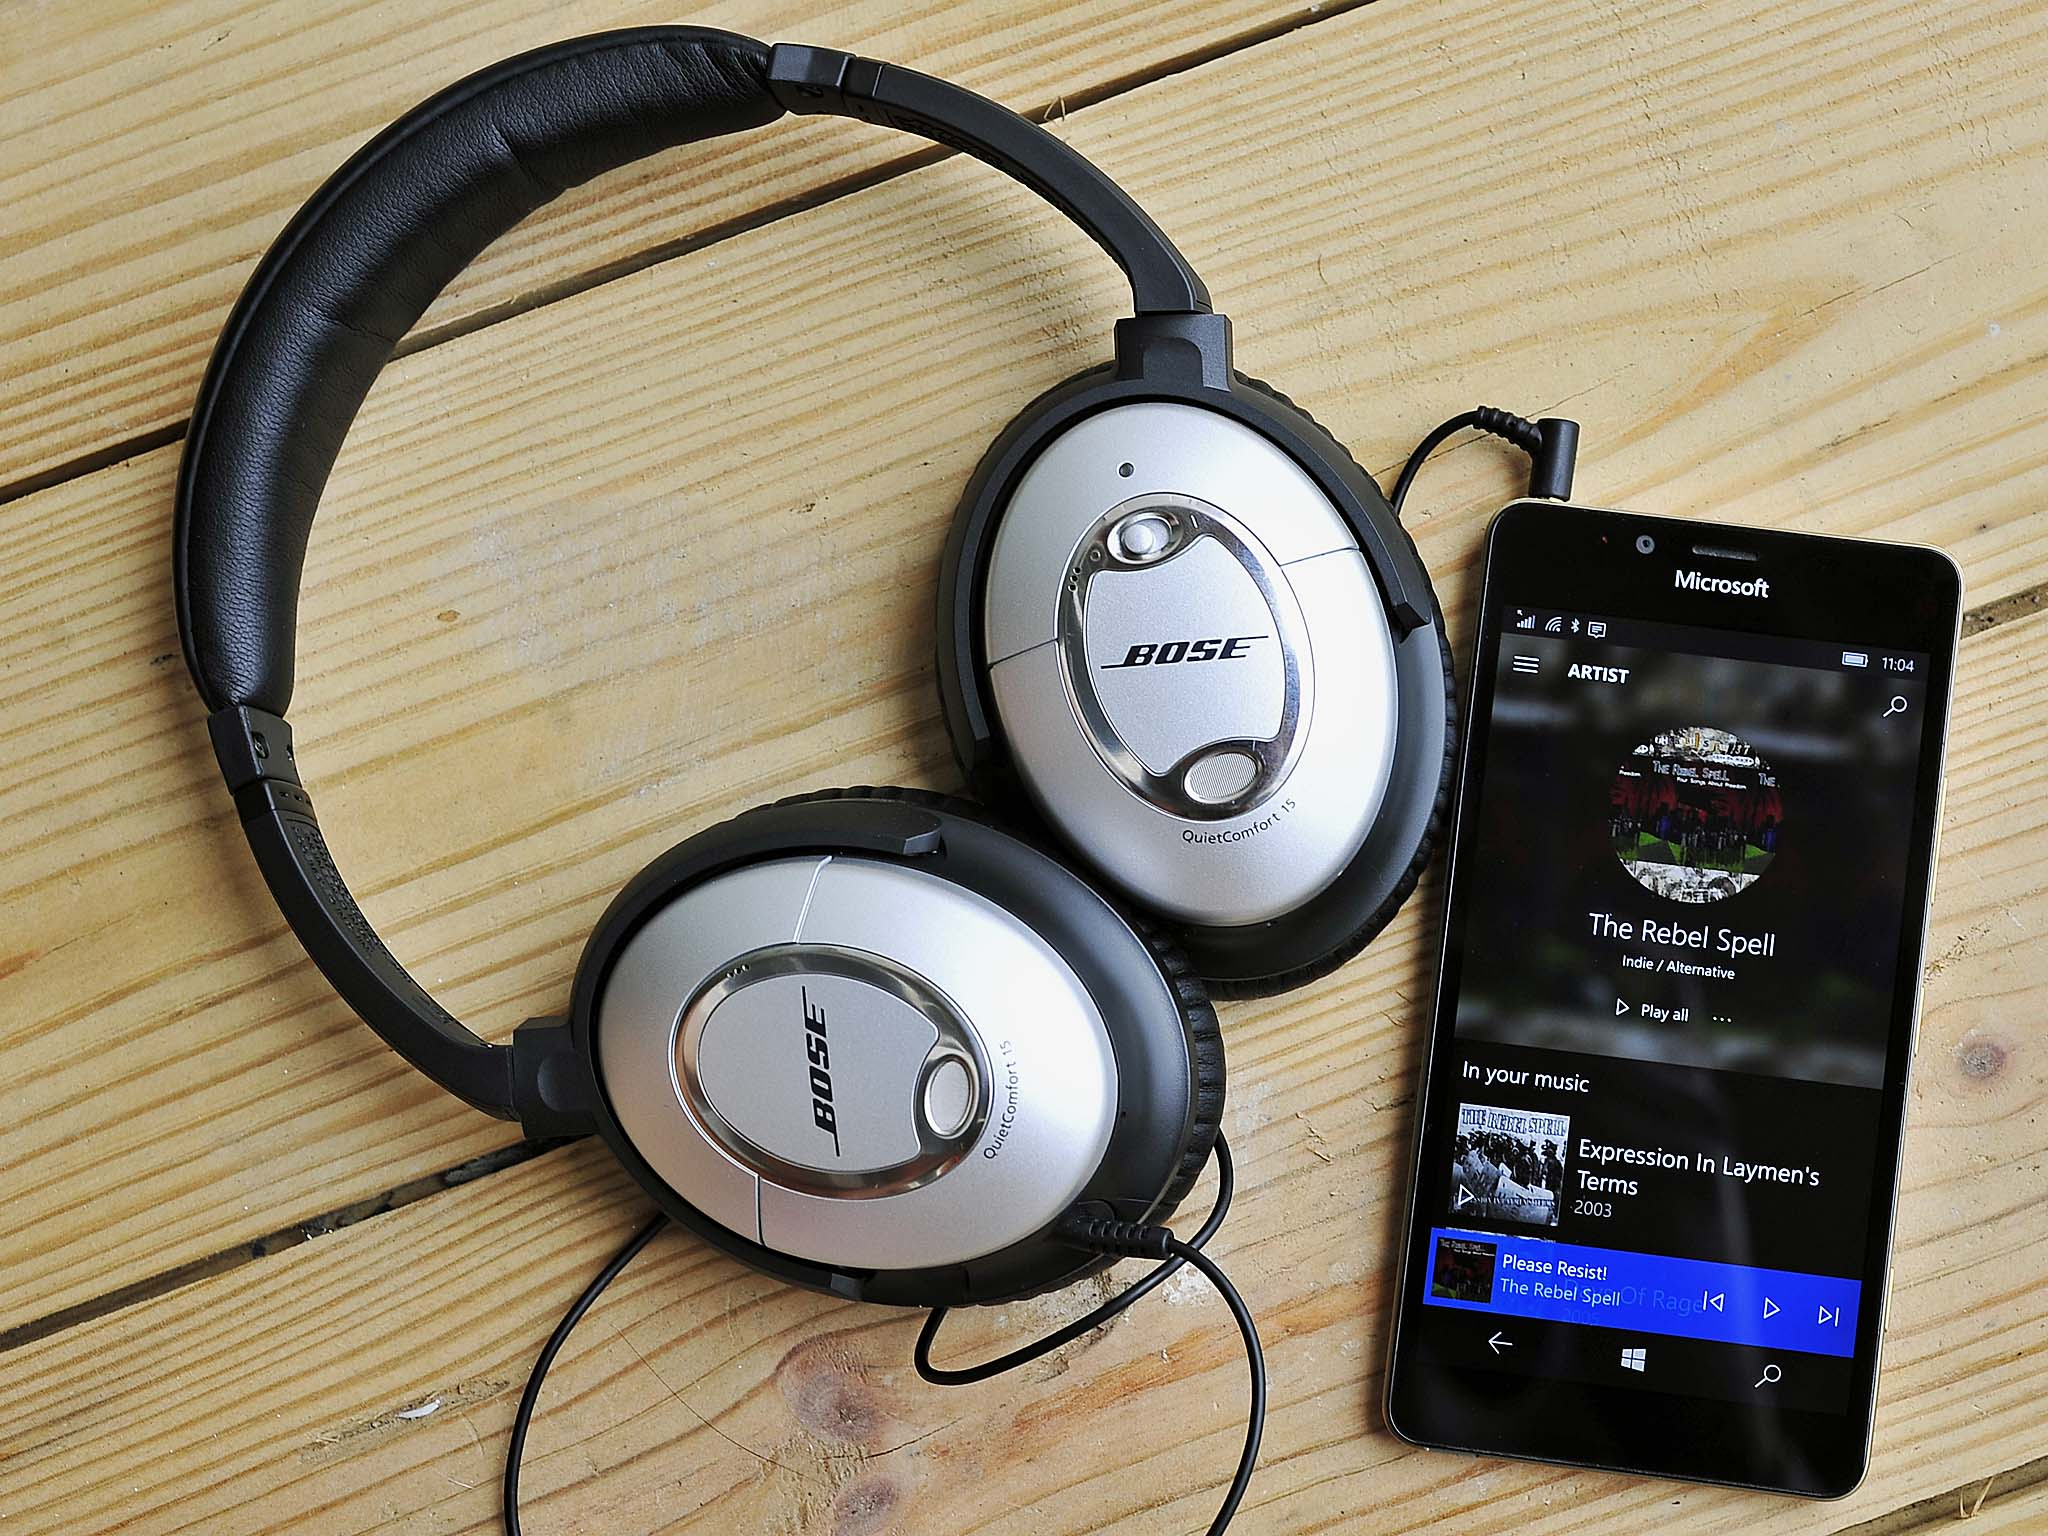 hight resolution of the difference in sound quality between bluetooth headphones and wired headphones has lessened over time however some diehard audiophiles still believe a